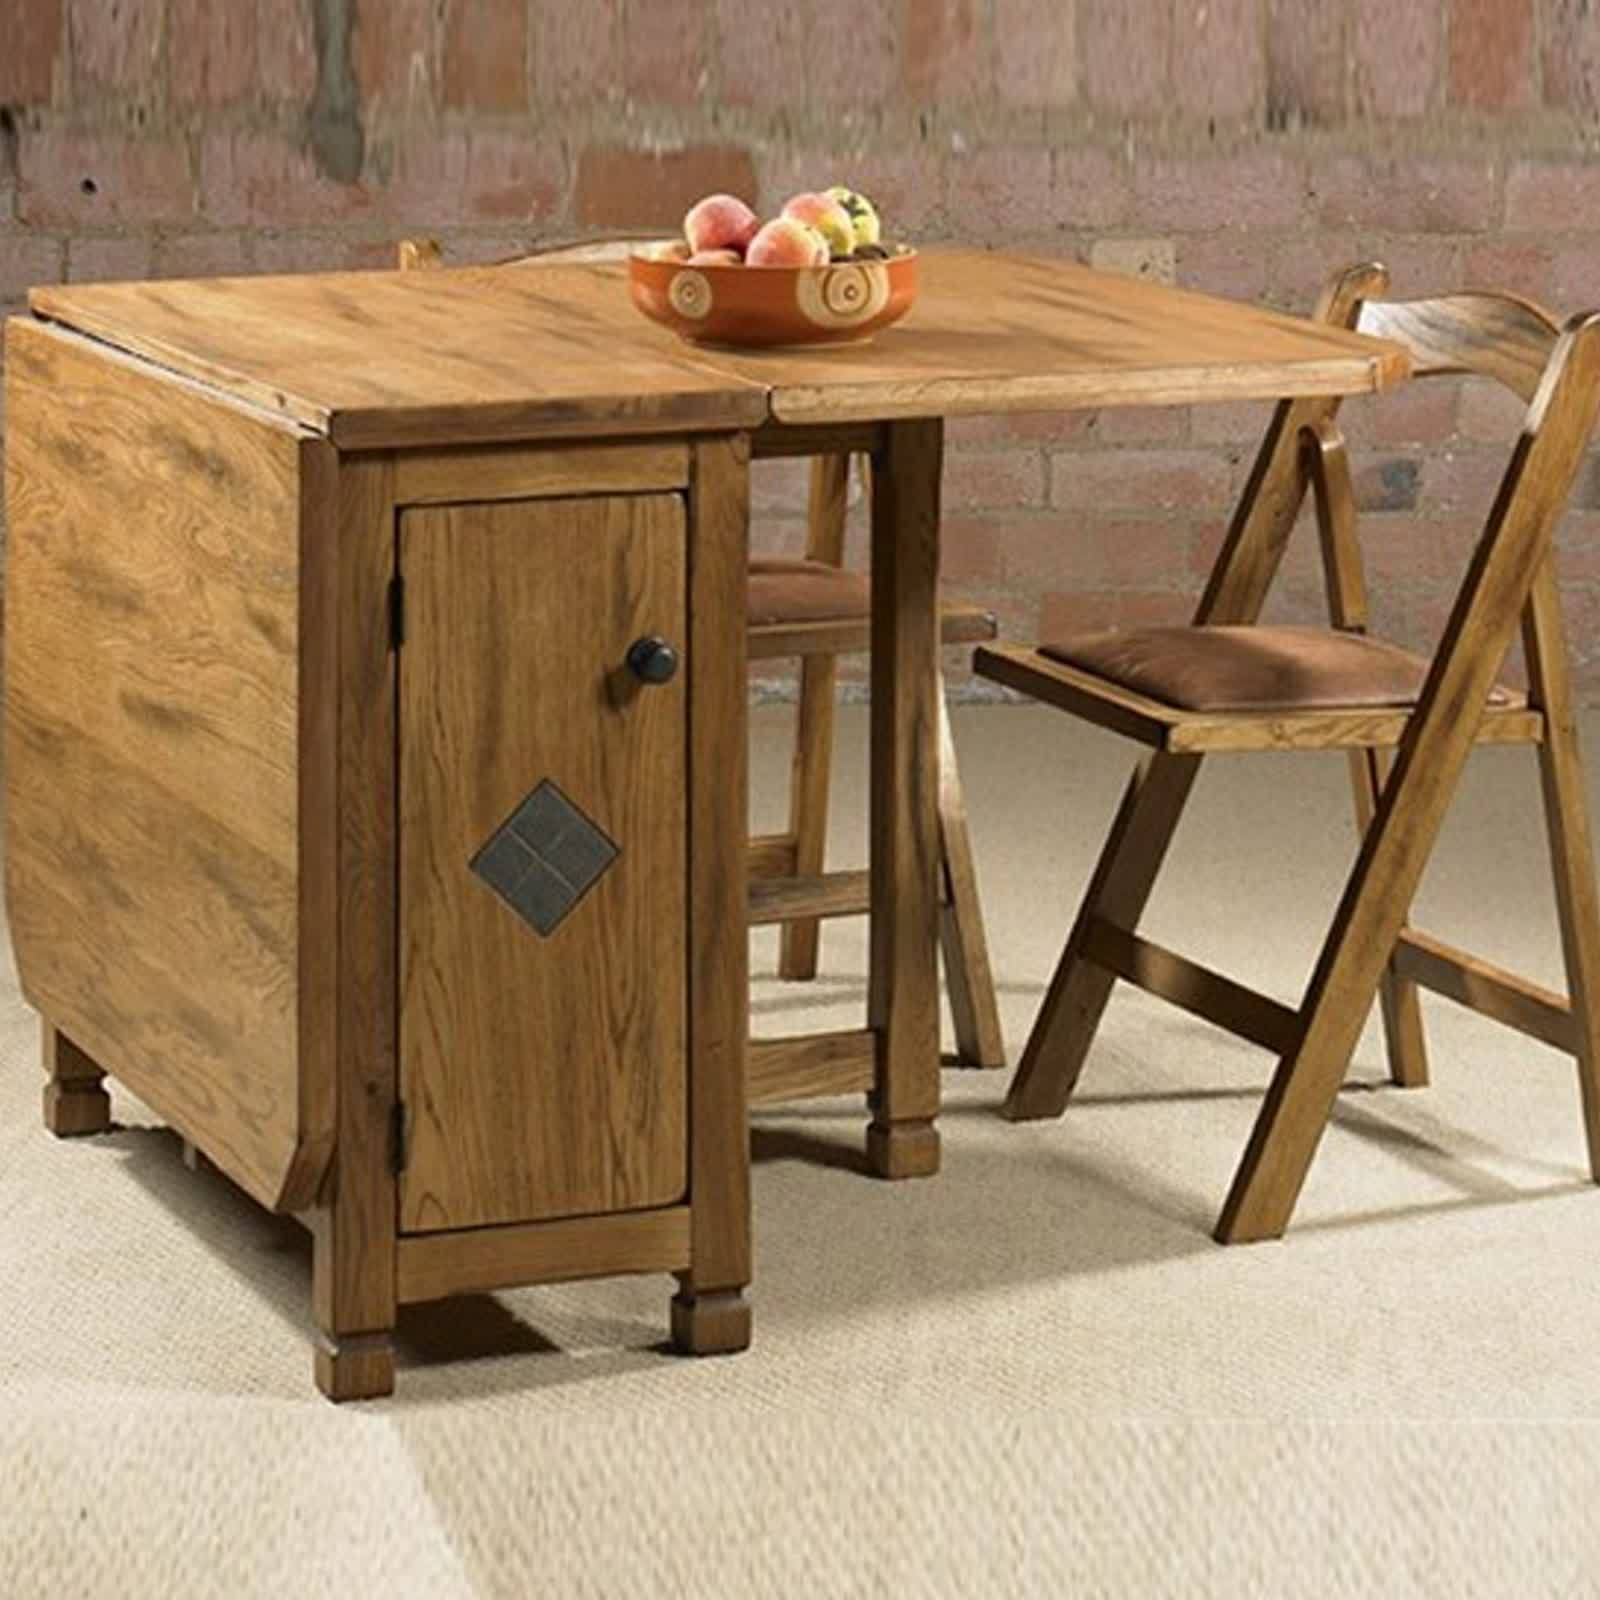 Dining Room Dining Room With Folded Dining Table And Dining Chairs Also Wood Floors Dining Table Chairs Dinning Tables And Chairs Folding Dining Table